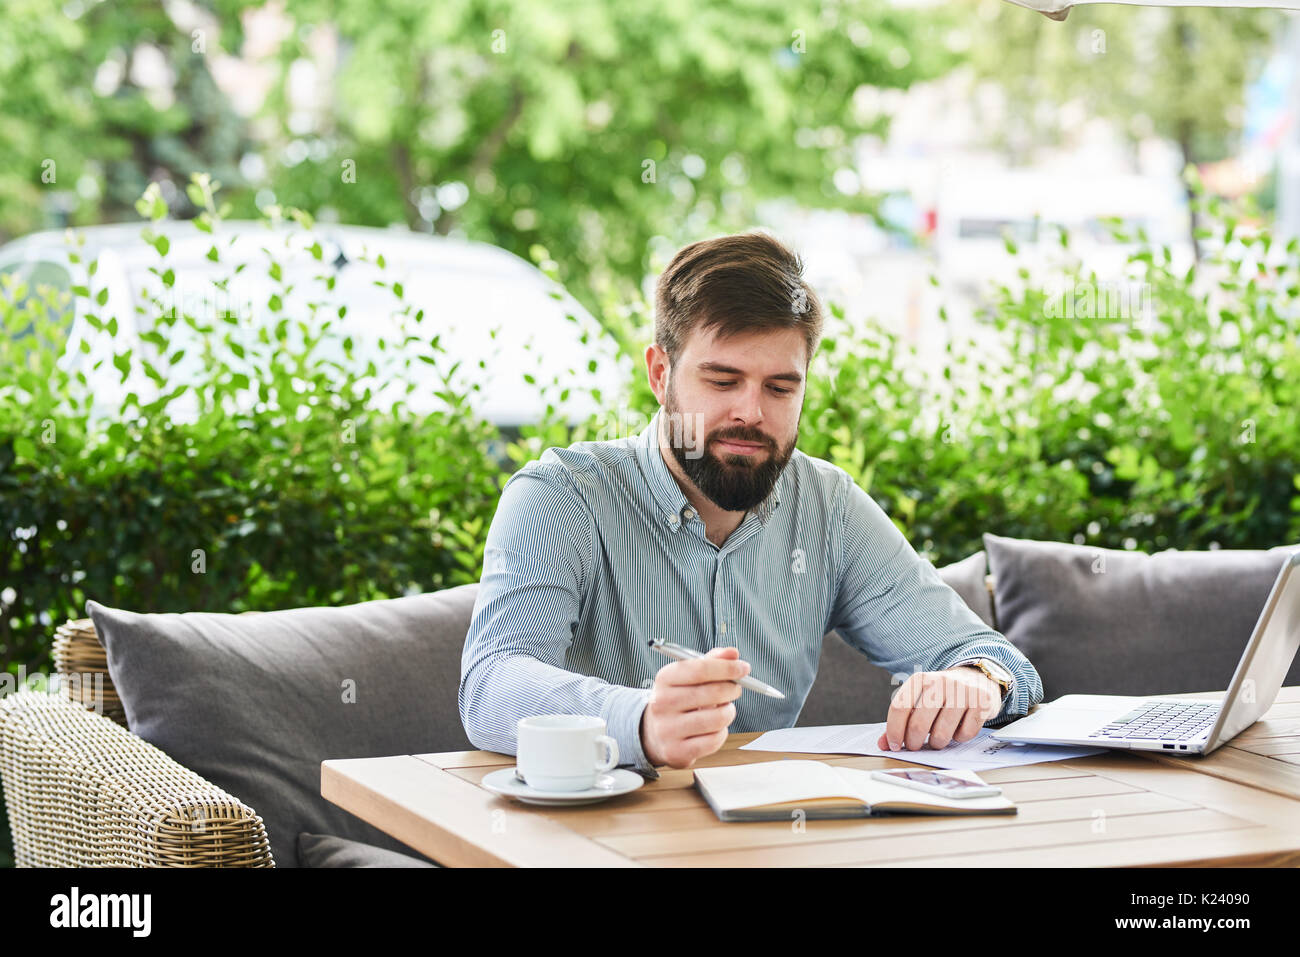 Smiling Businessman Enjoying Working in Cafe - Stock Image